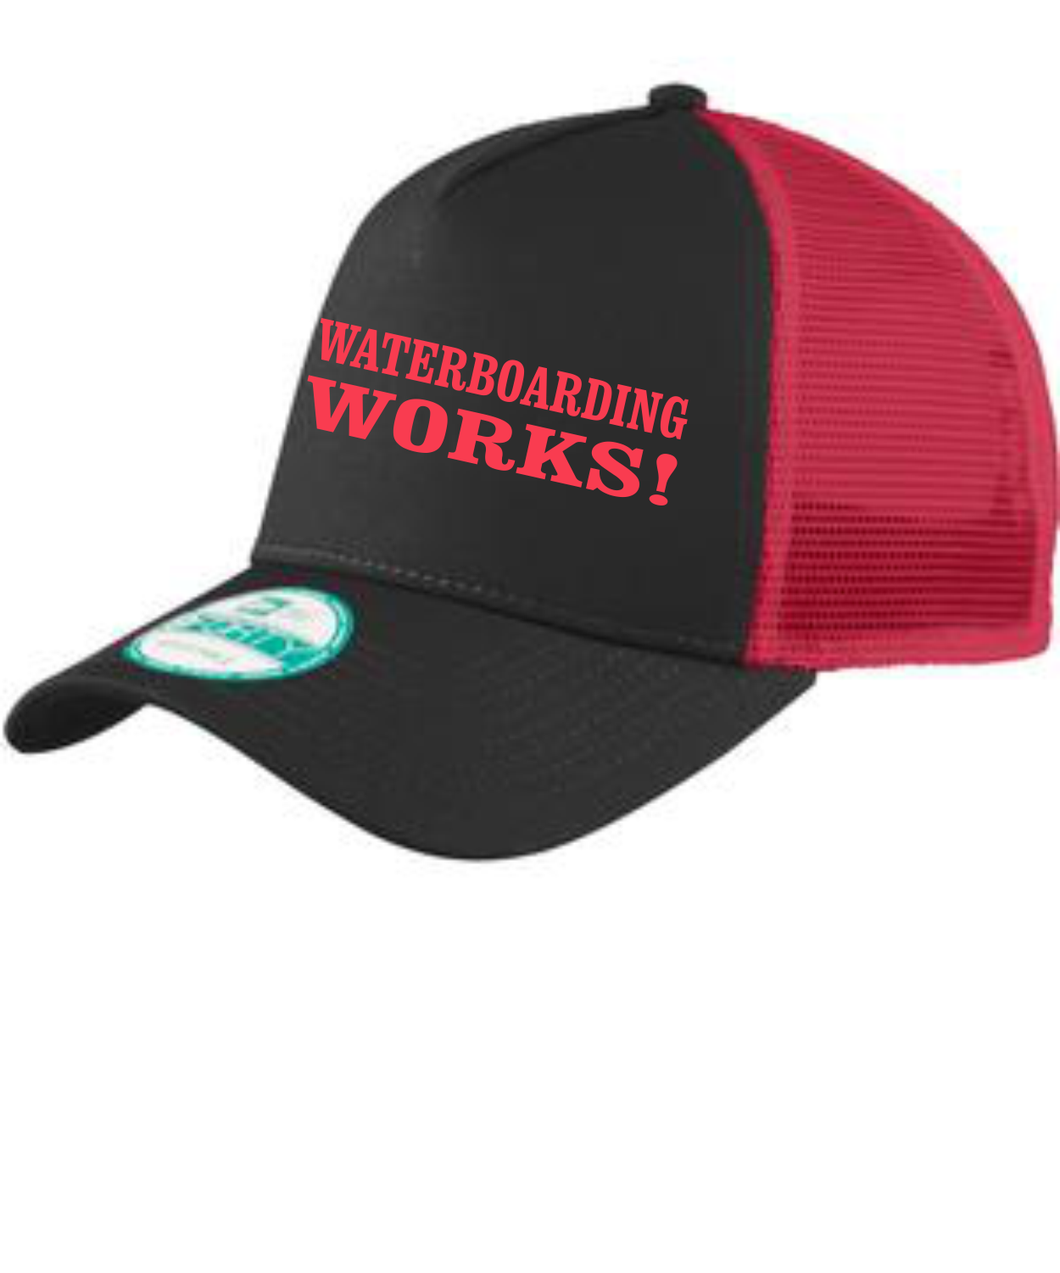 Waterboarding Works Snapback